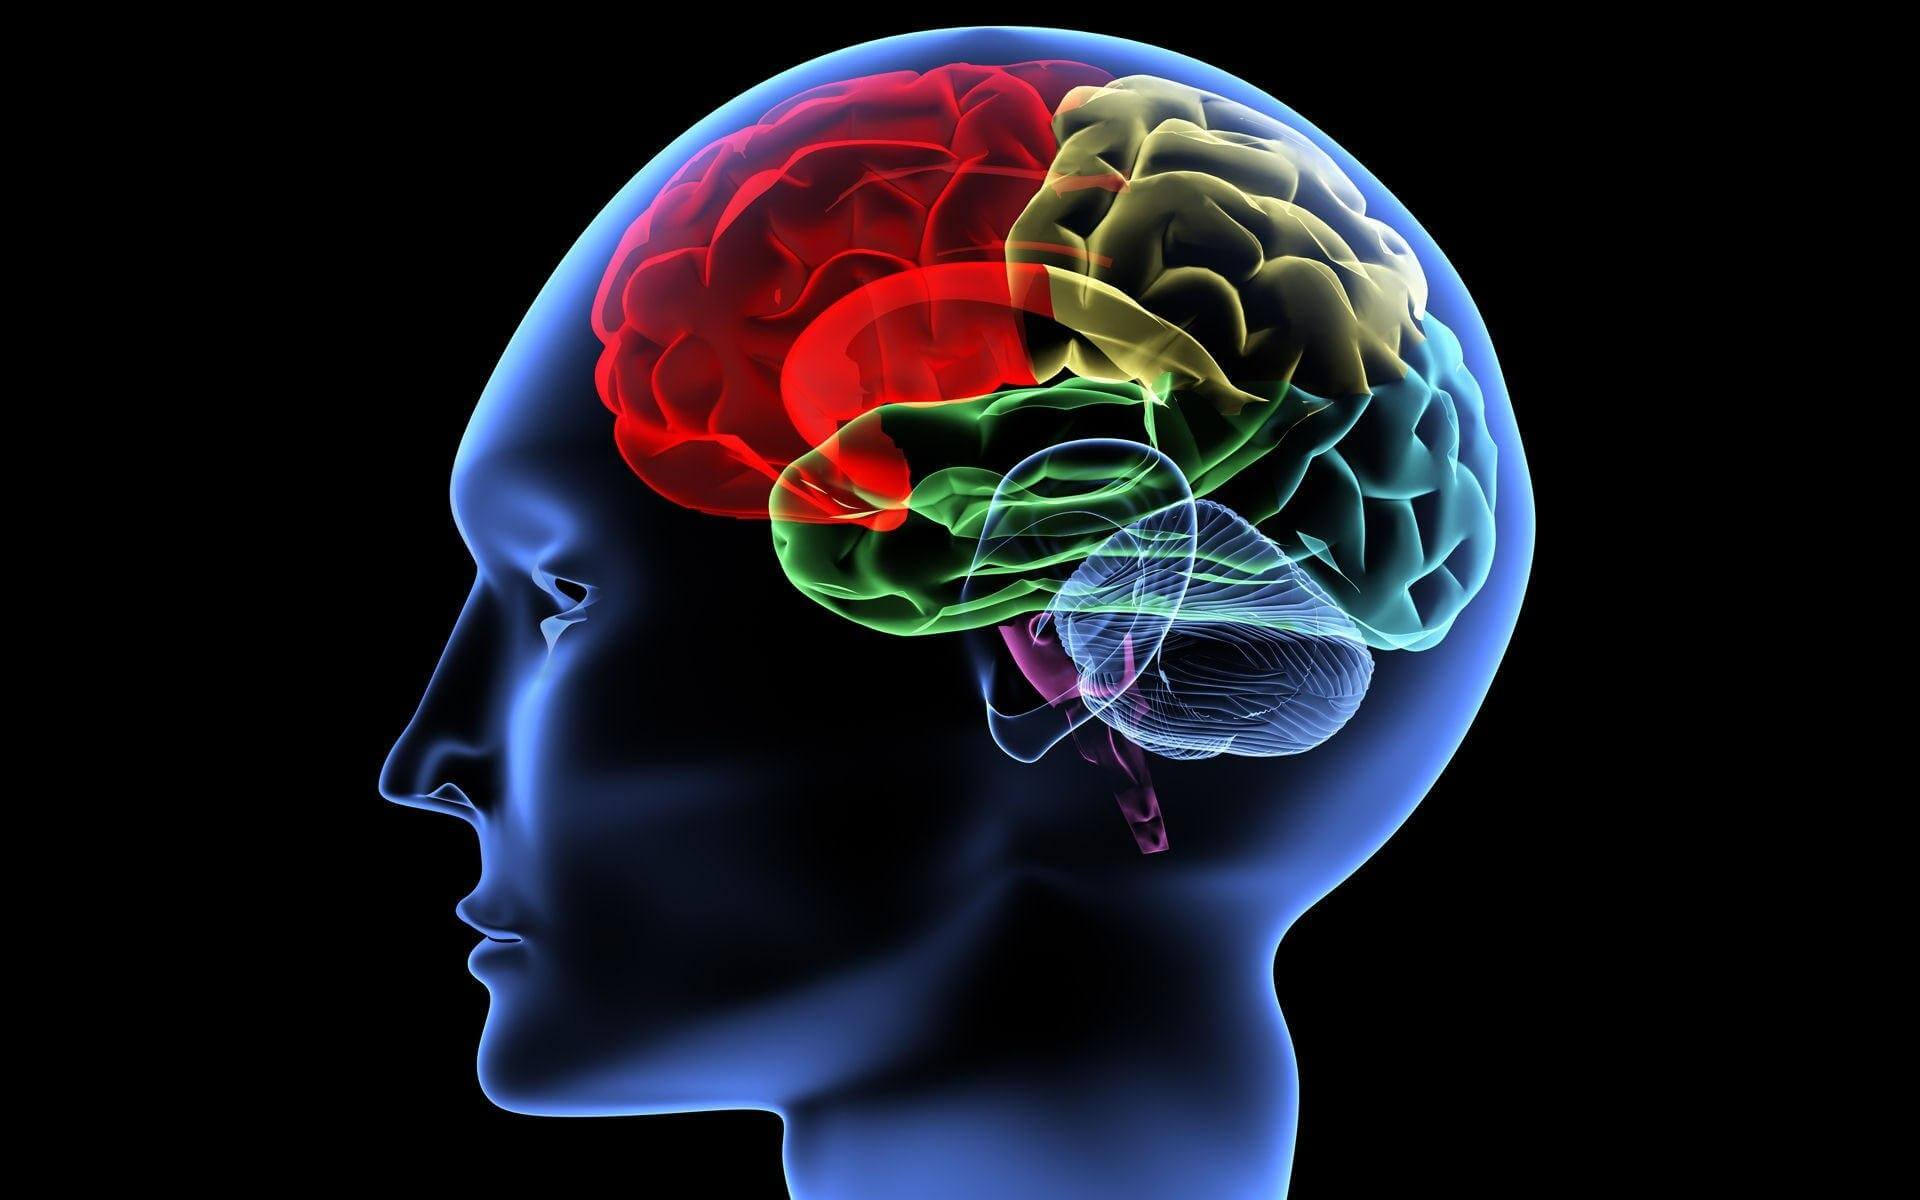 Excessive activity of the brain can significantly reduce life expectancy